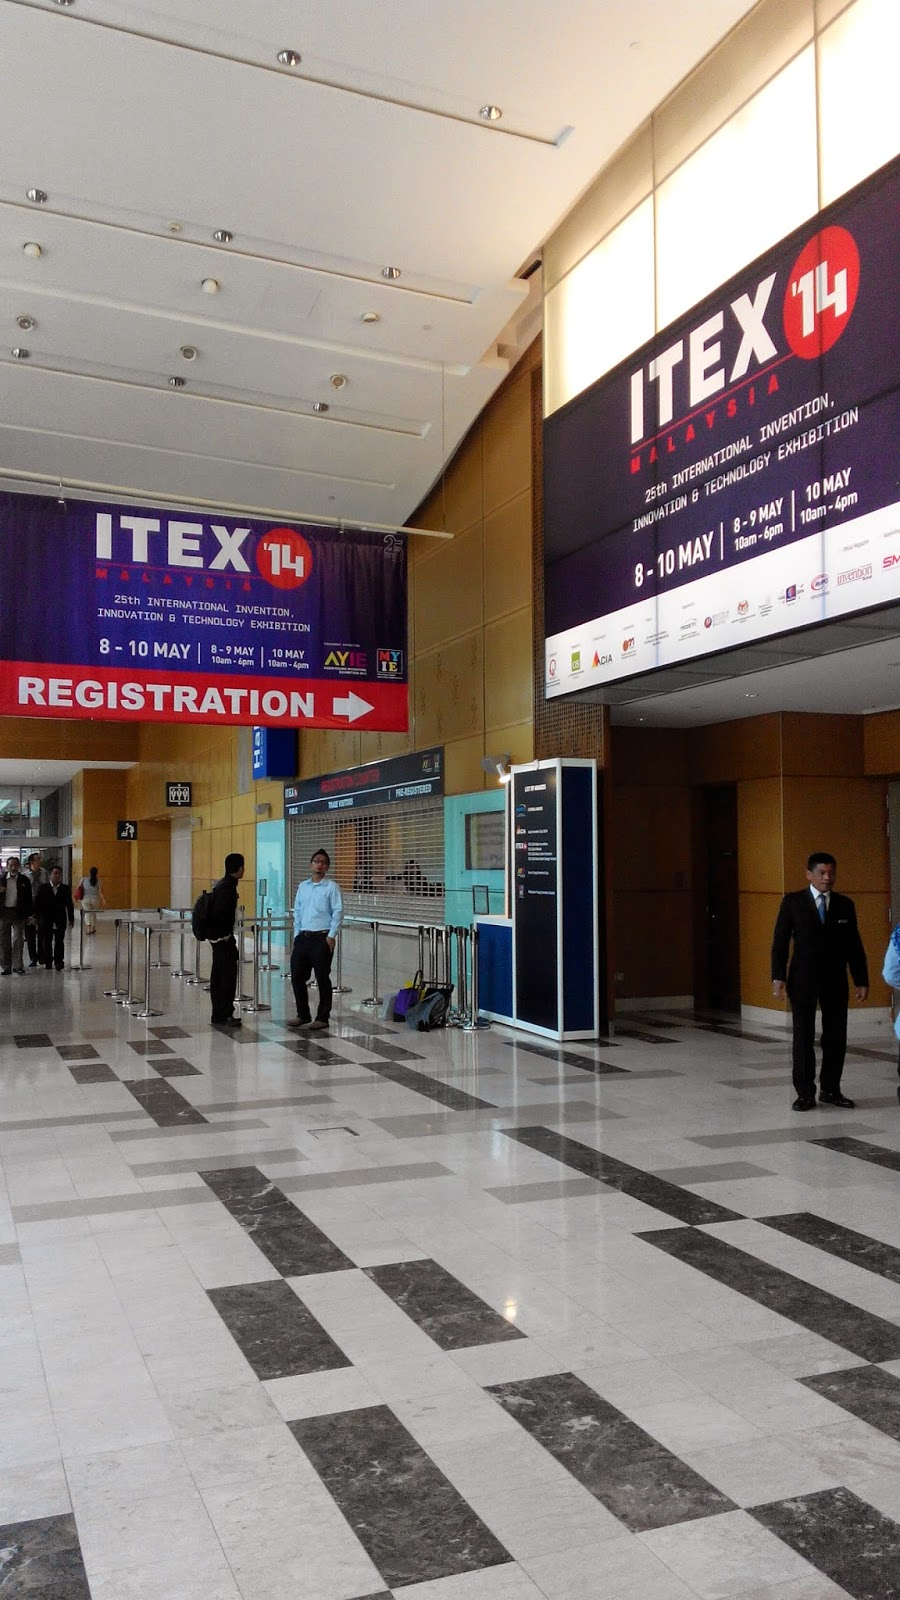 itex 2014, klcc convention centre